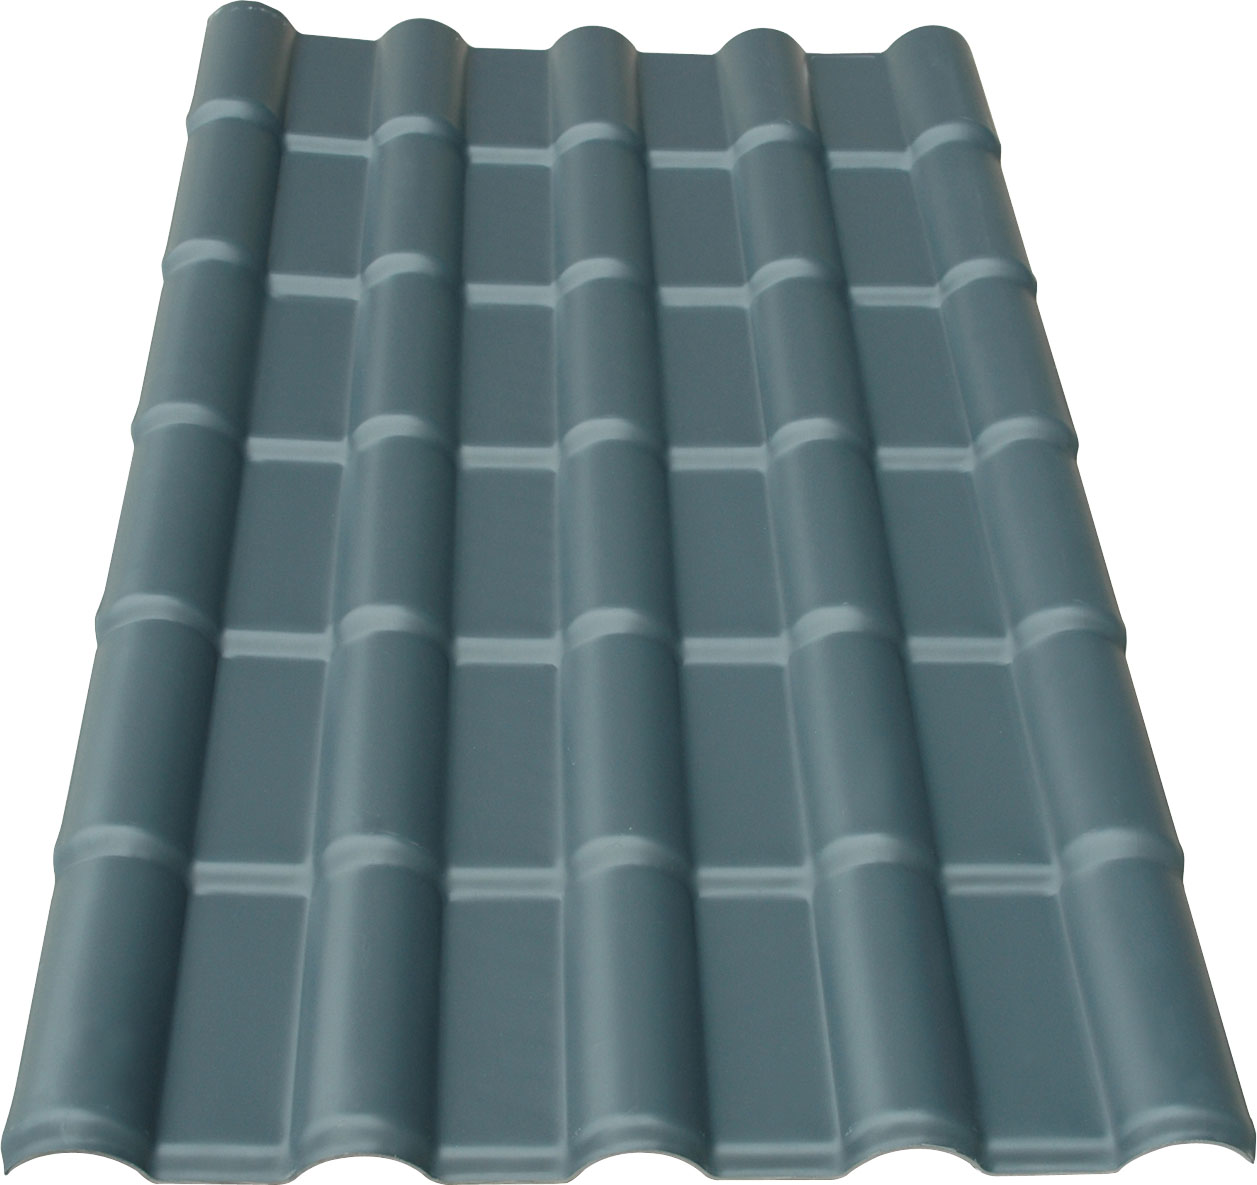 Aluminium Roofing Sheet : How much is roofing sheets in nigeria properties